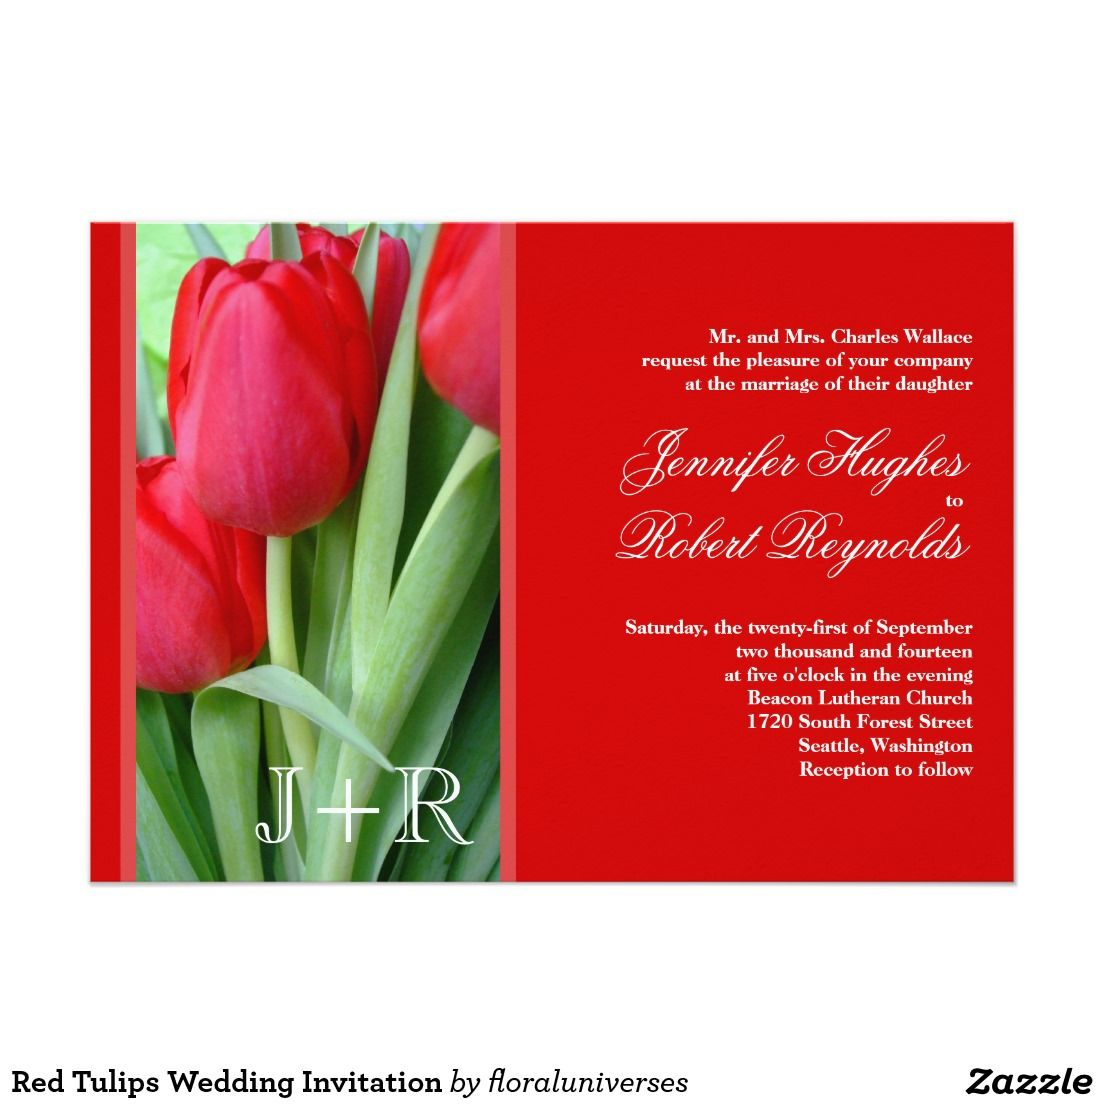 Red Tulips Wedding Invitation | Floral orchid | Pinterest | Red ...